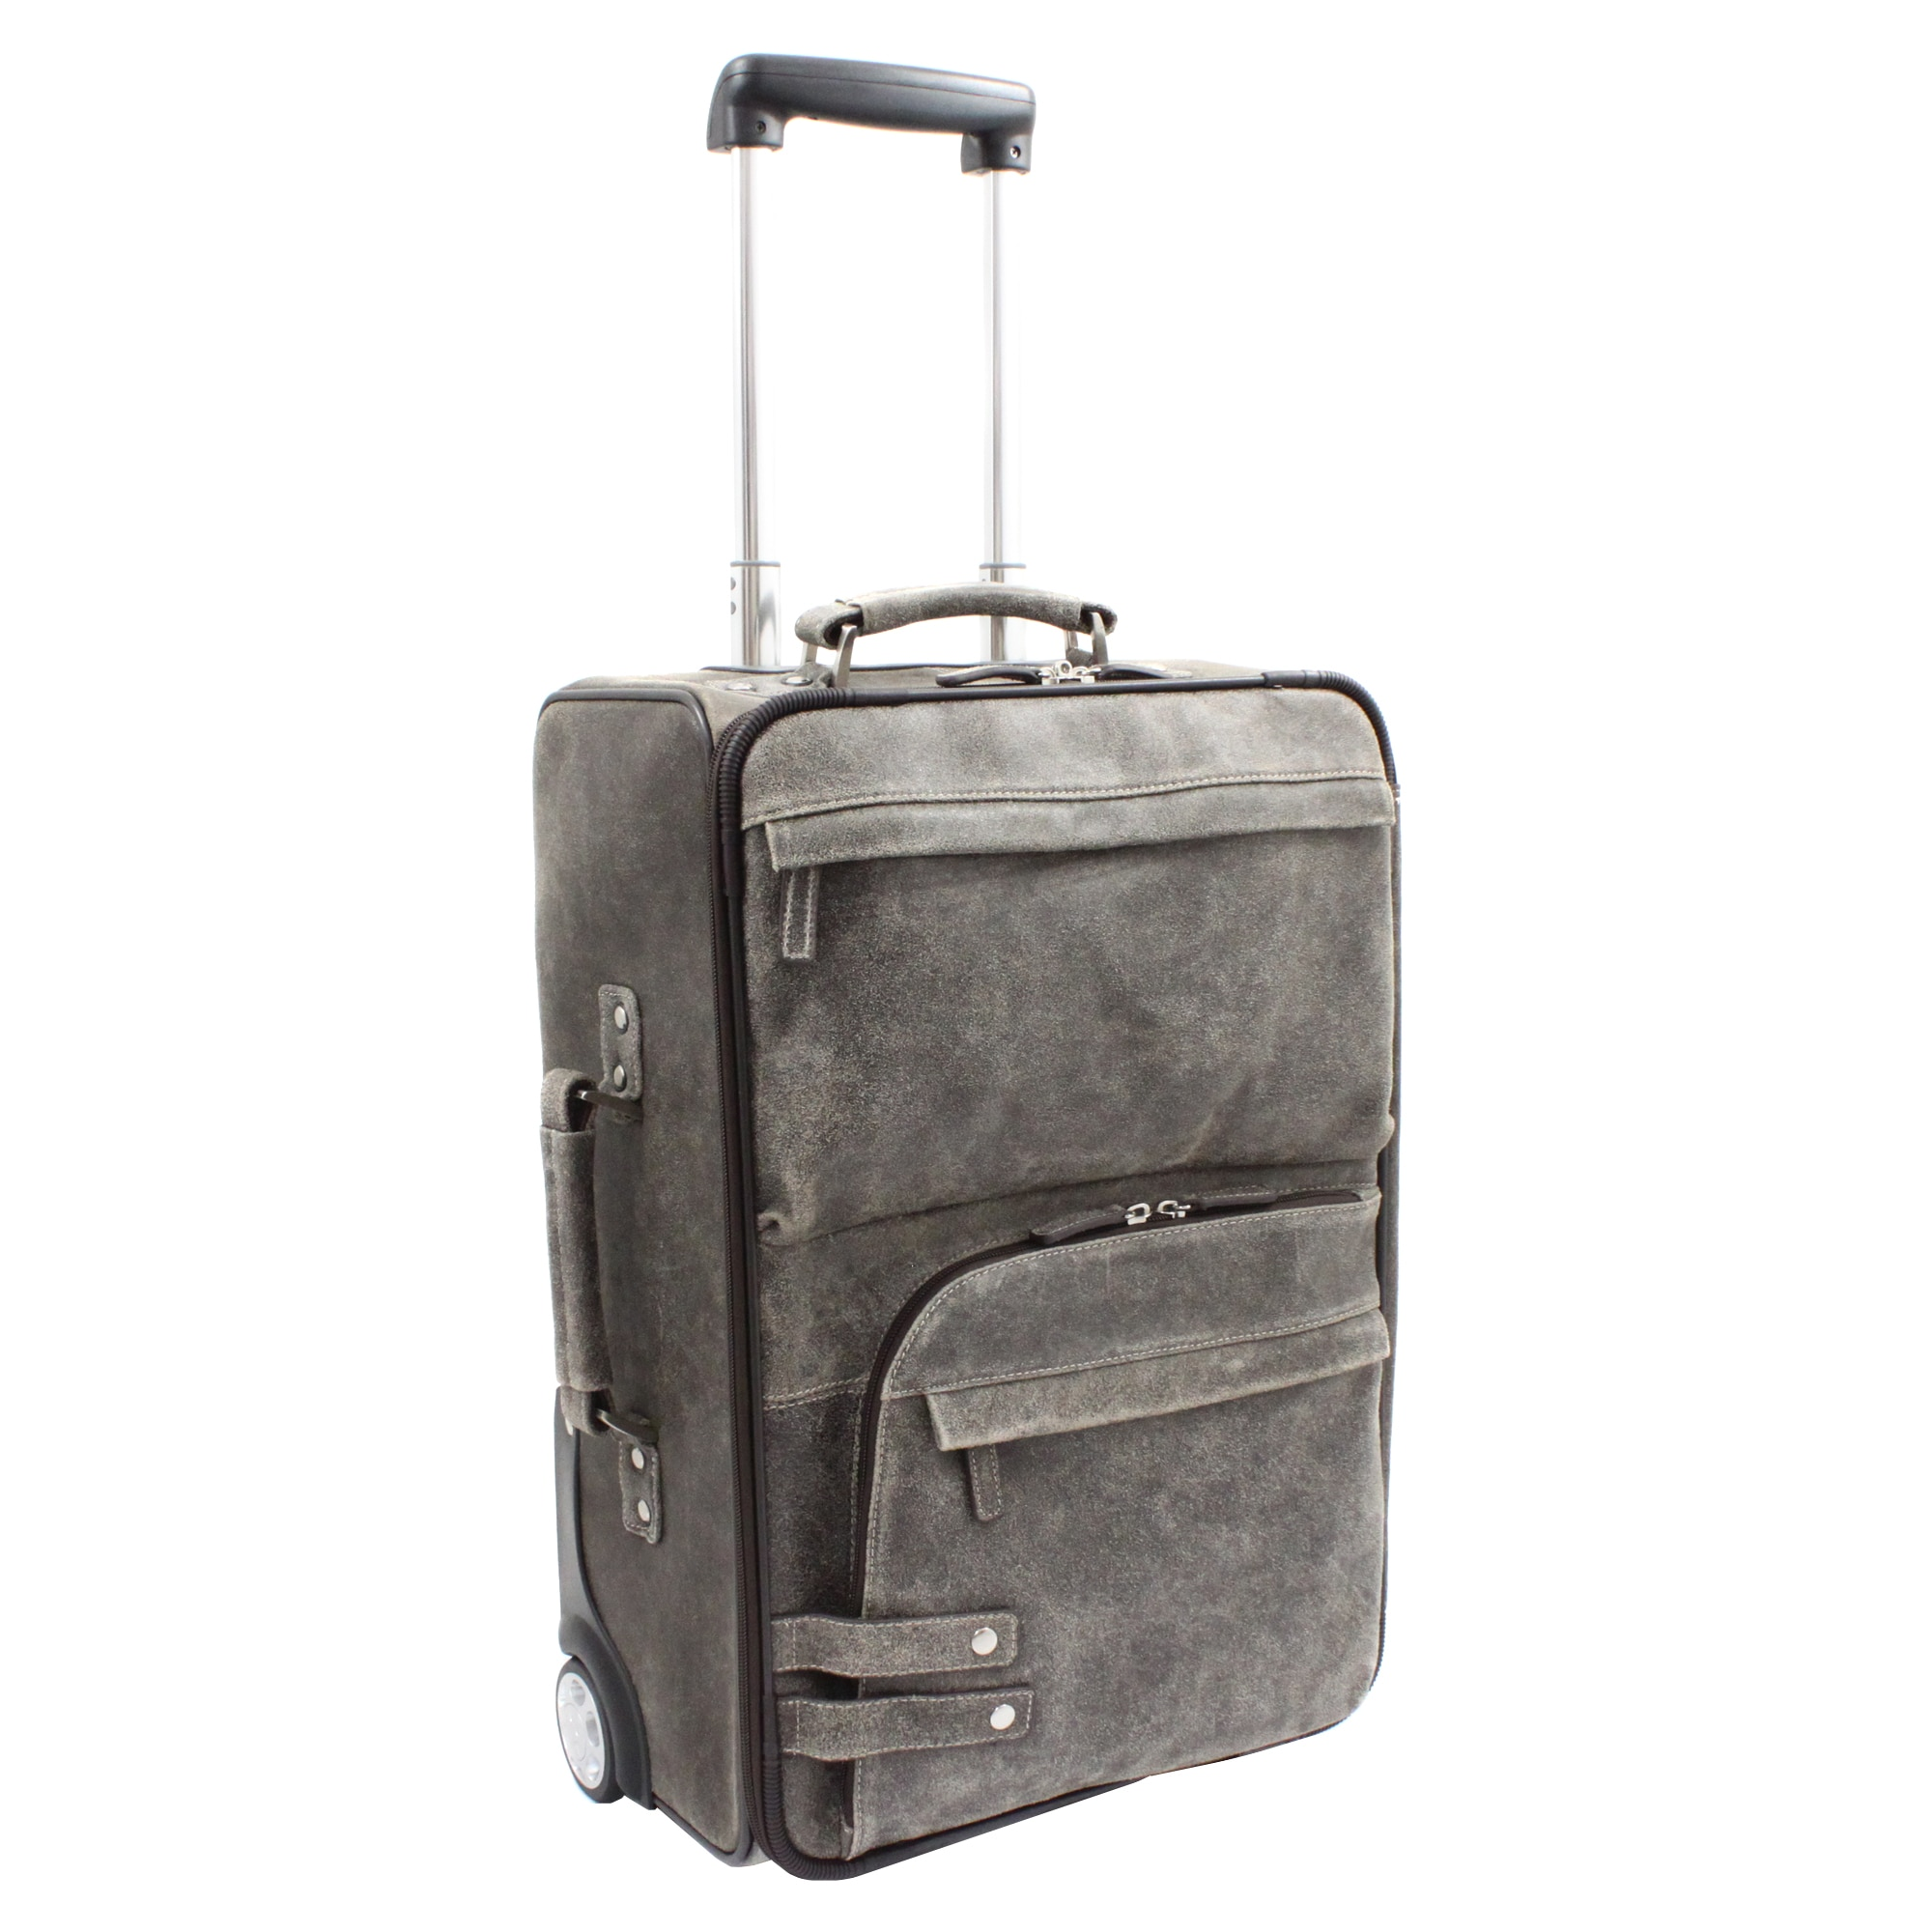 The Jones Collection Distressed Leather 21-inch Carry-on Upright